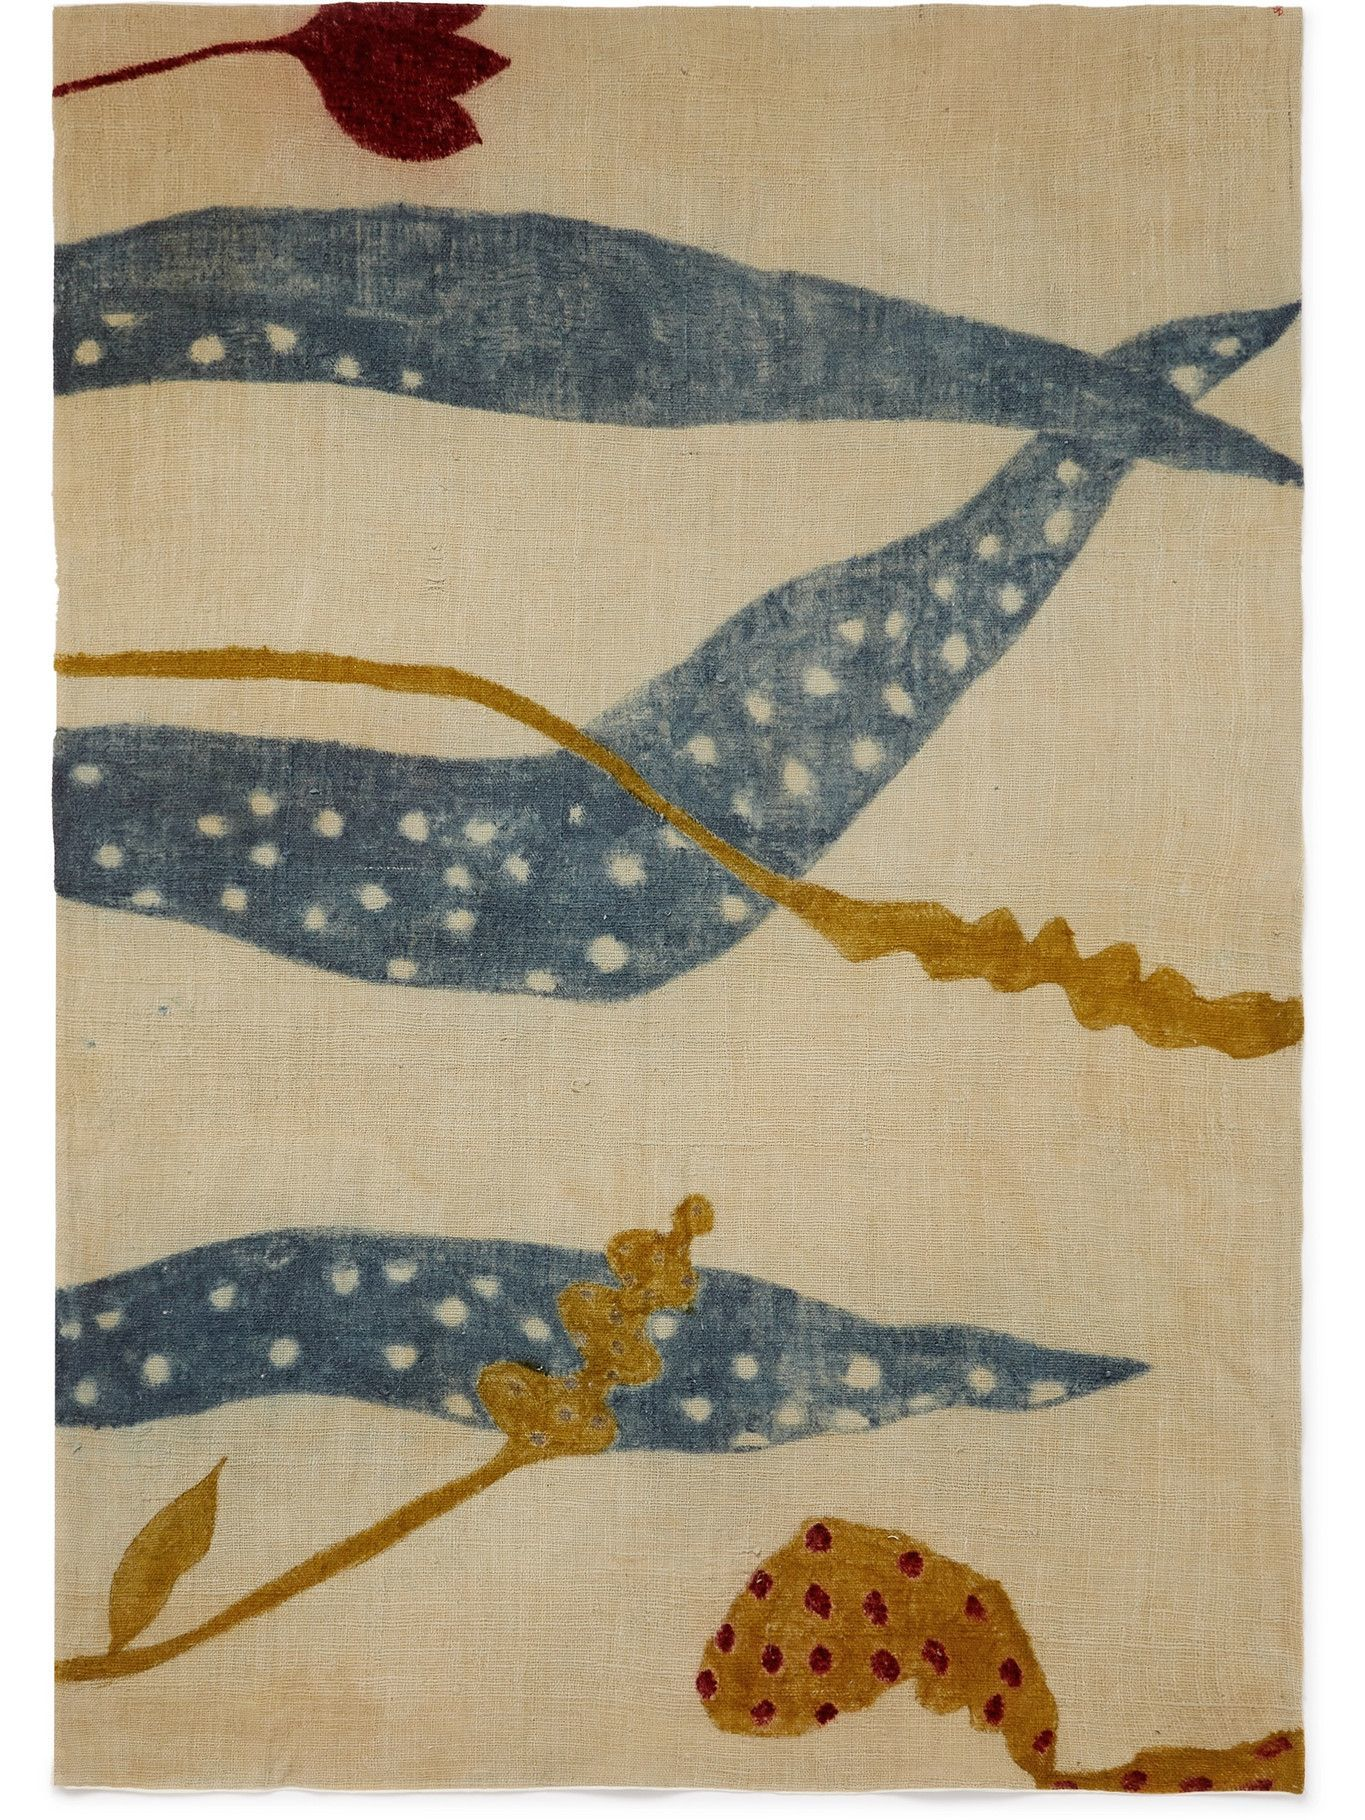 11.11/eleven eleven - Hand-Painted Organic Cotton Beach Towel